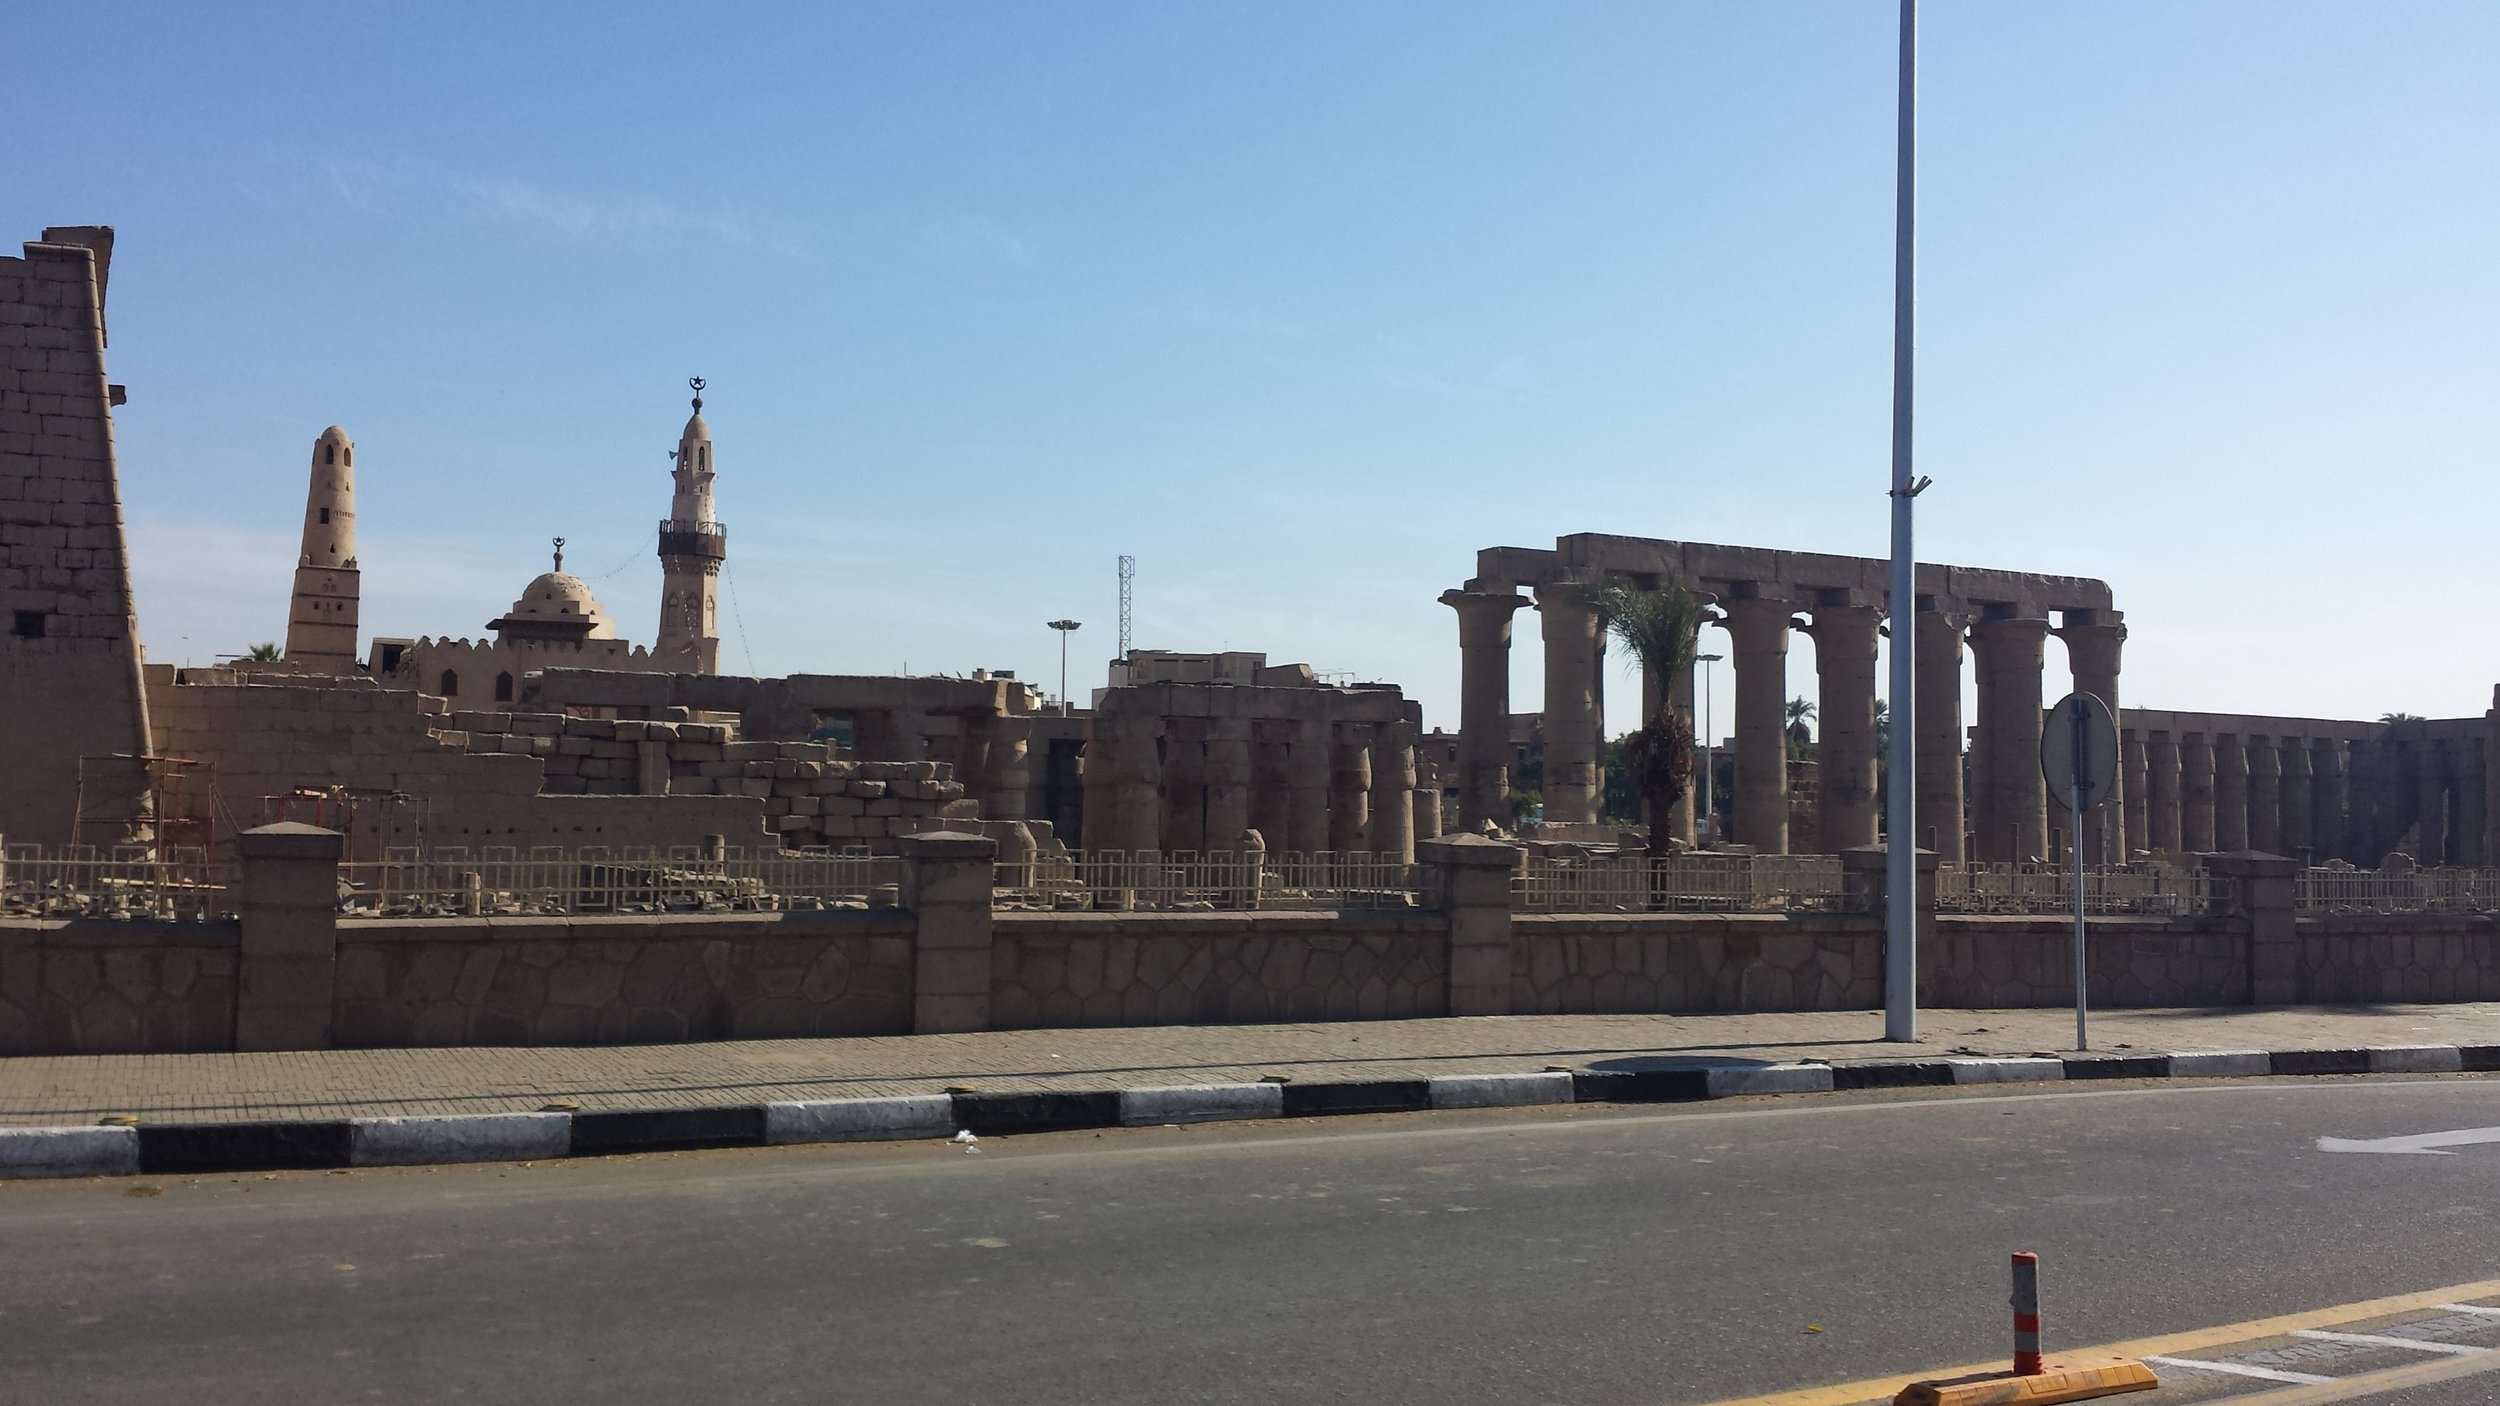 Luxor temple from the outside.